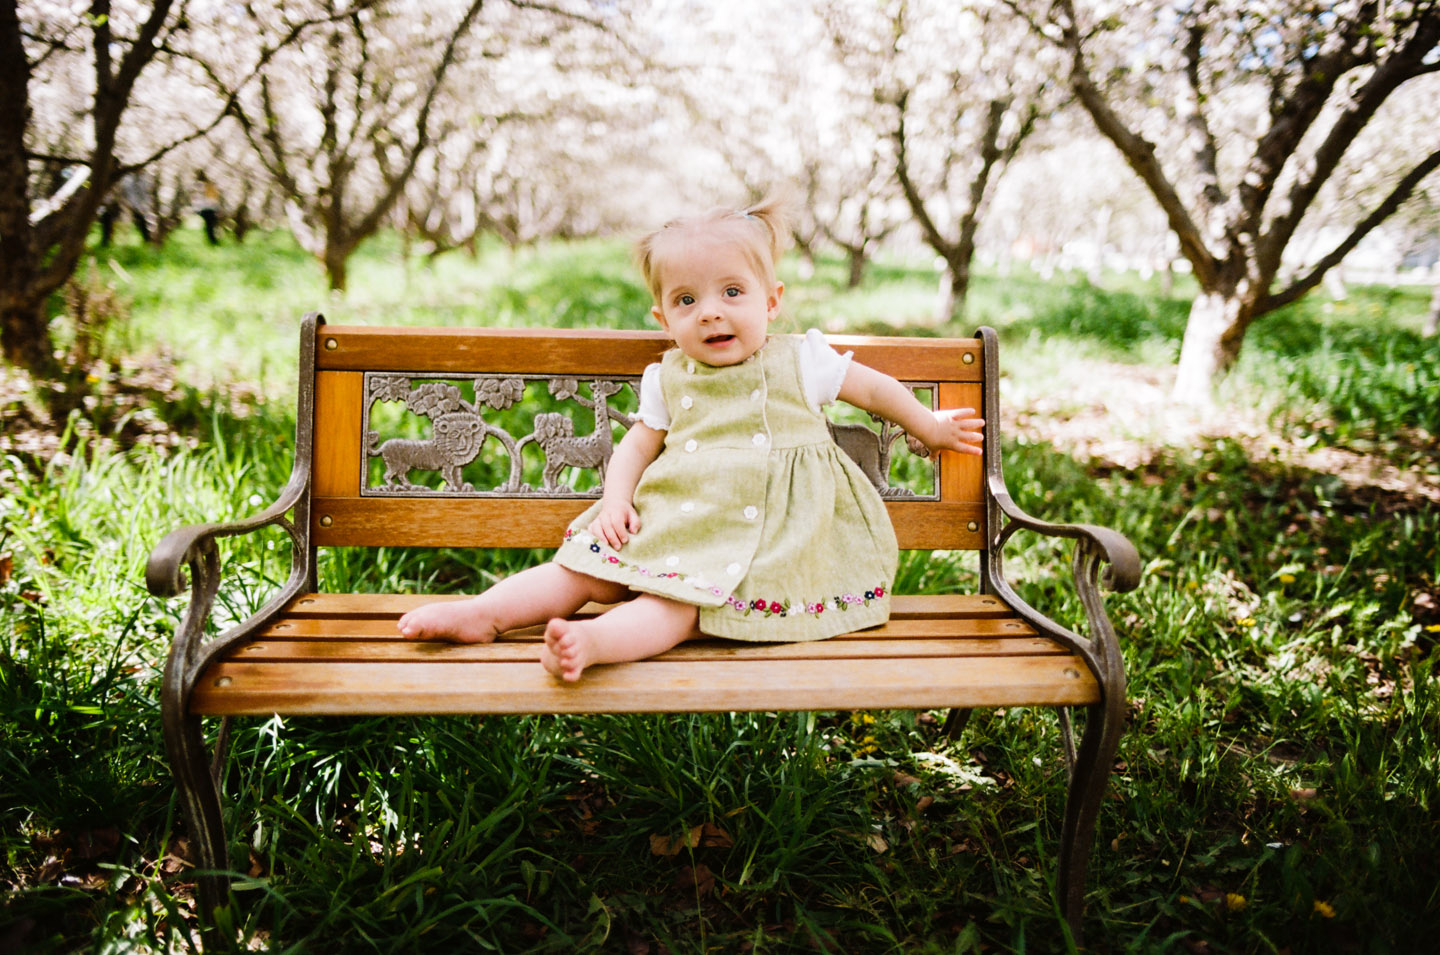 baby on a garden bench in the orchard